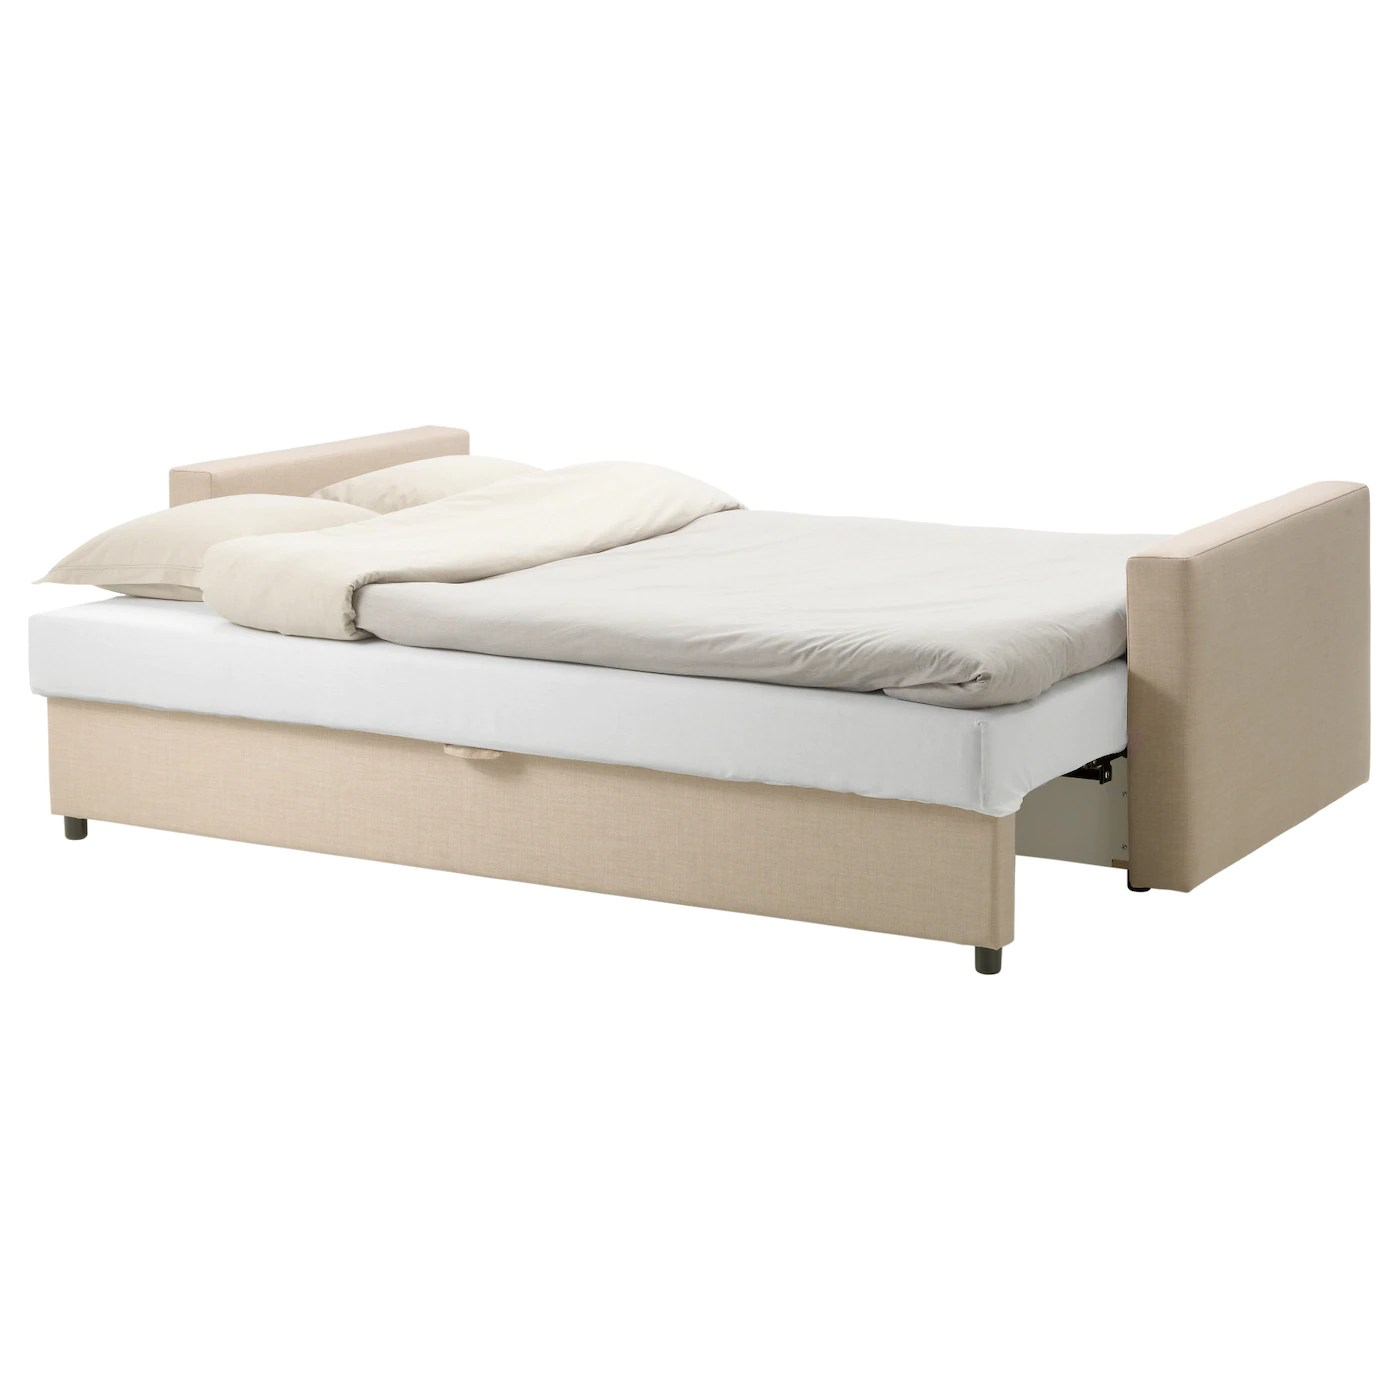 Chair That Converts To A Bed Friheten Three Seat Sofa Bed Skiftebo Beige Ikea